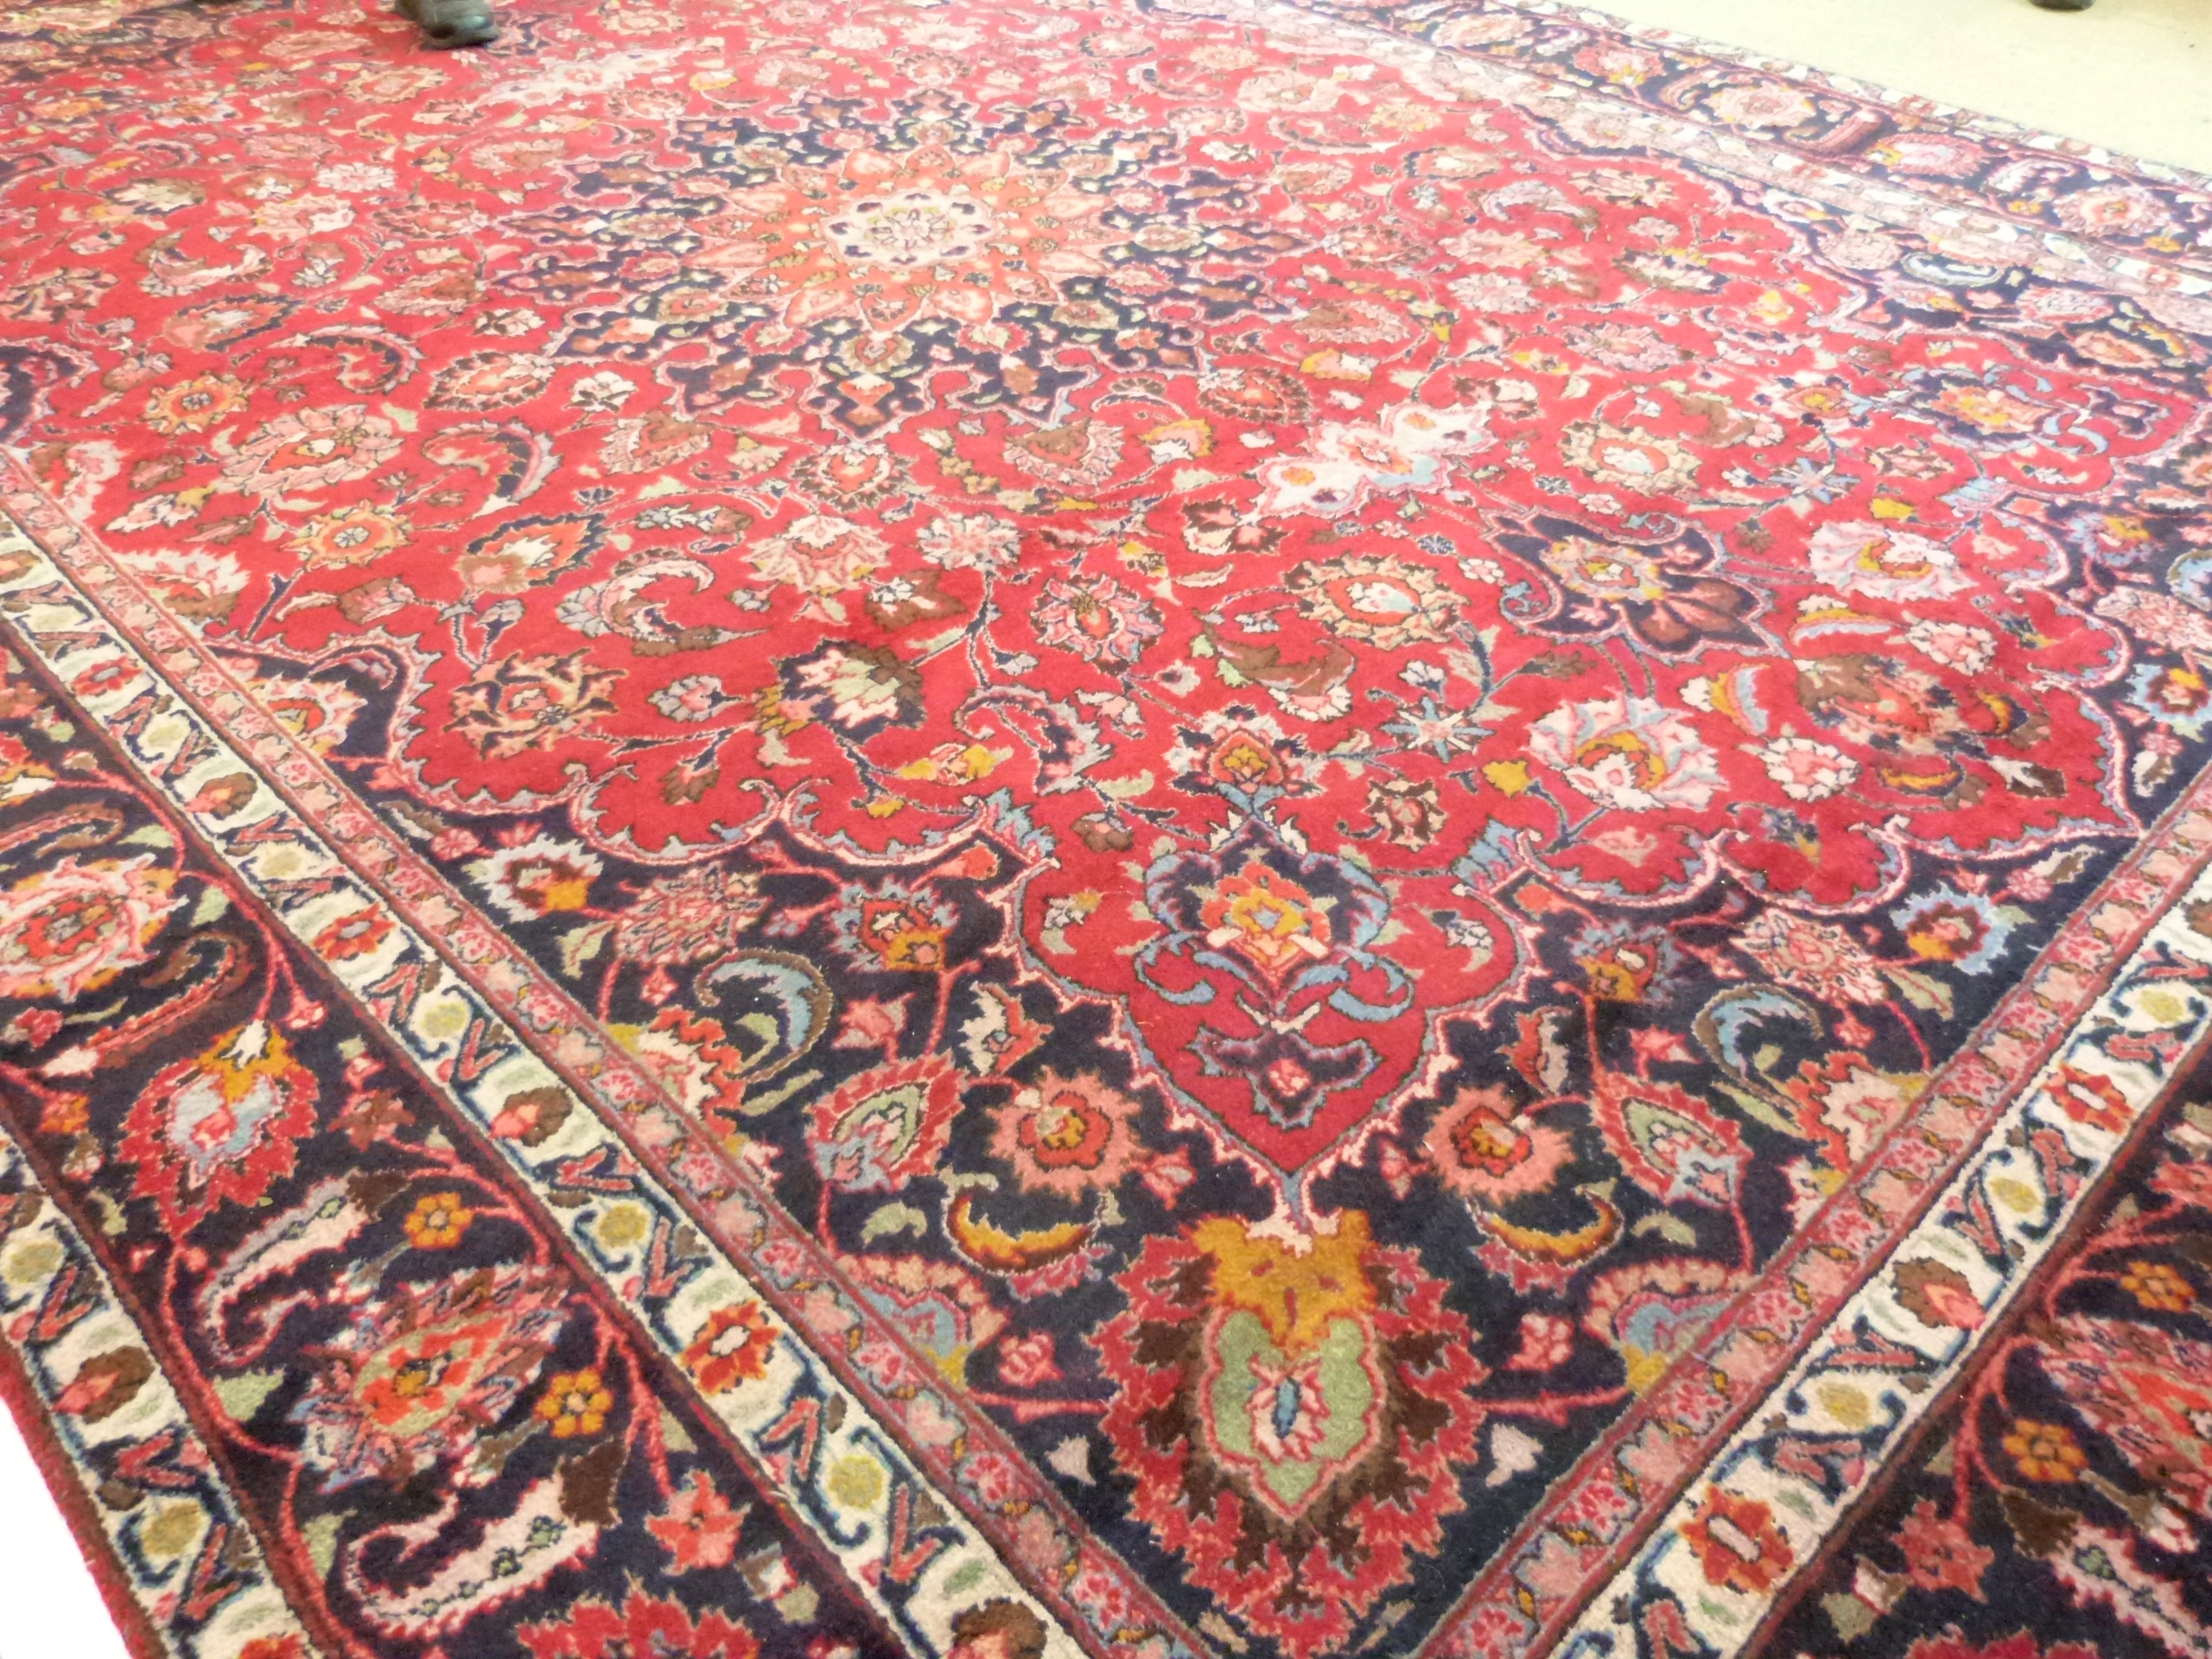 Large red ground Persian Mashad Carpet, mutlicoloured with traditional design 388cm x 270cm approx - Image 5 of 7